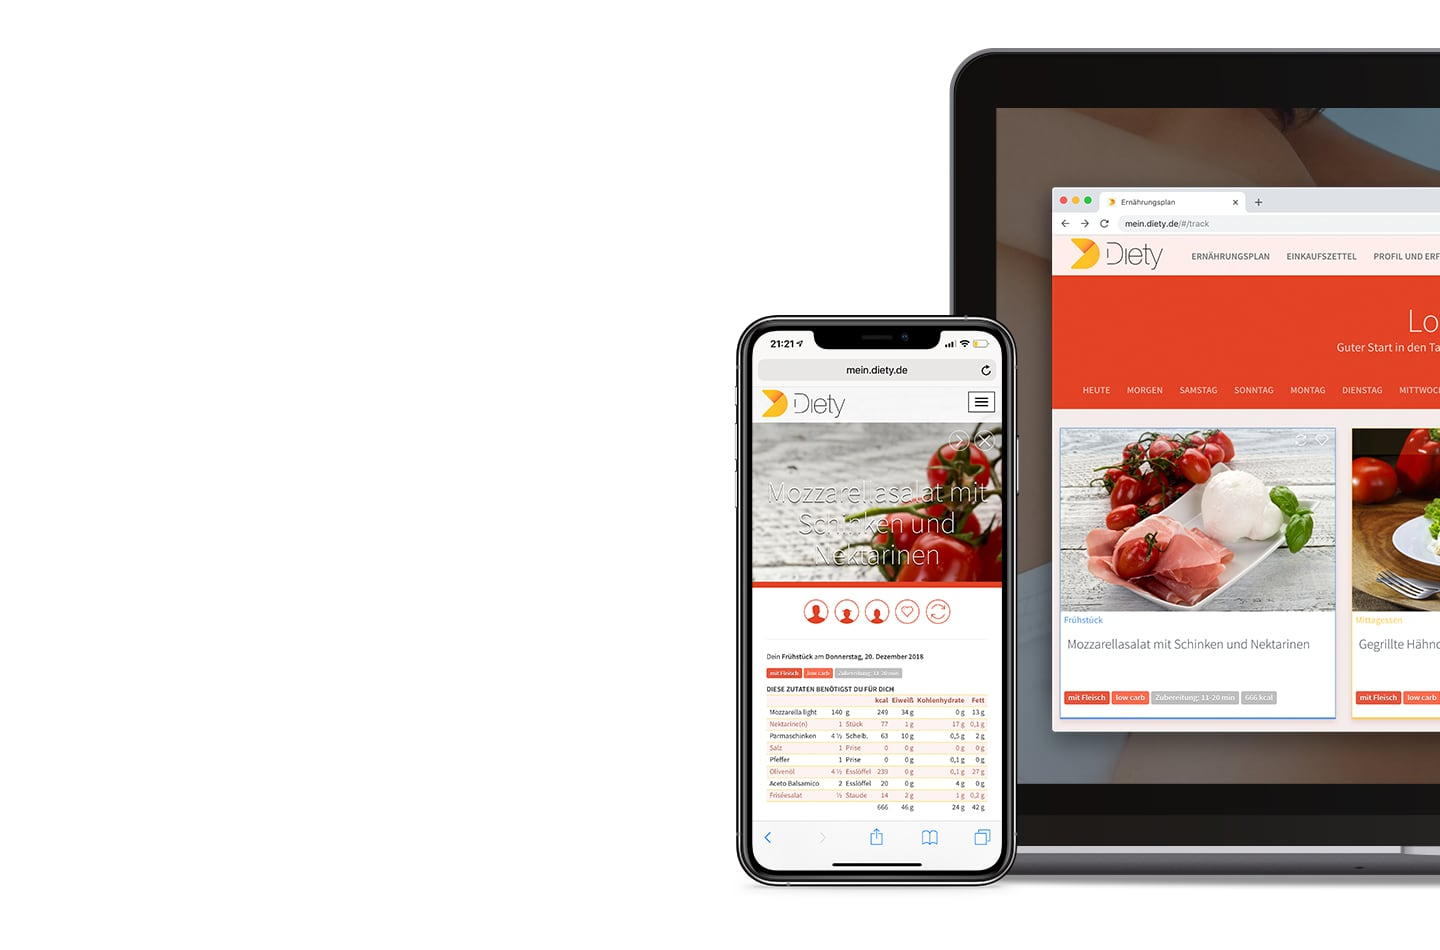 Low Carb diet plan for lose weight at Diety on iPhone, iPad and Laptop